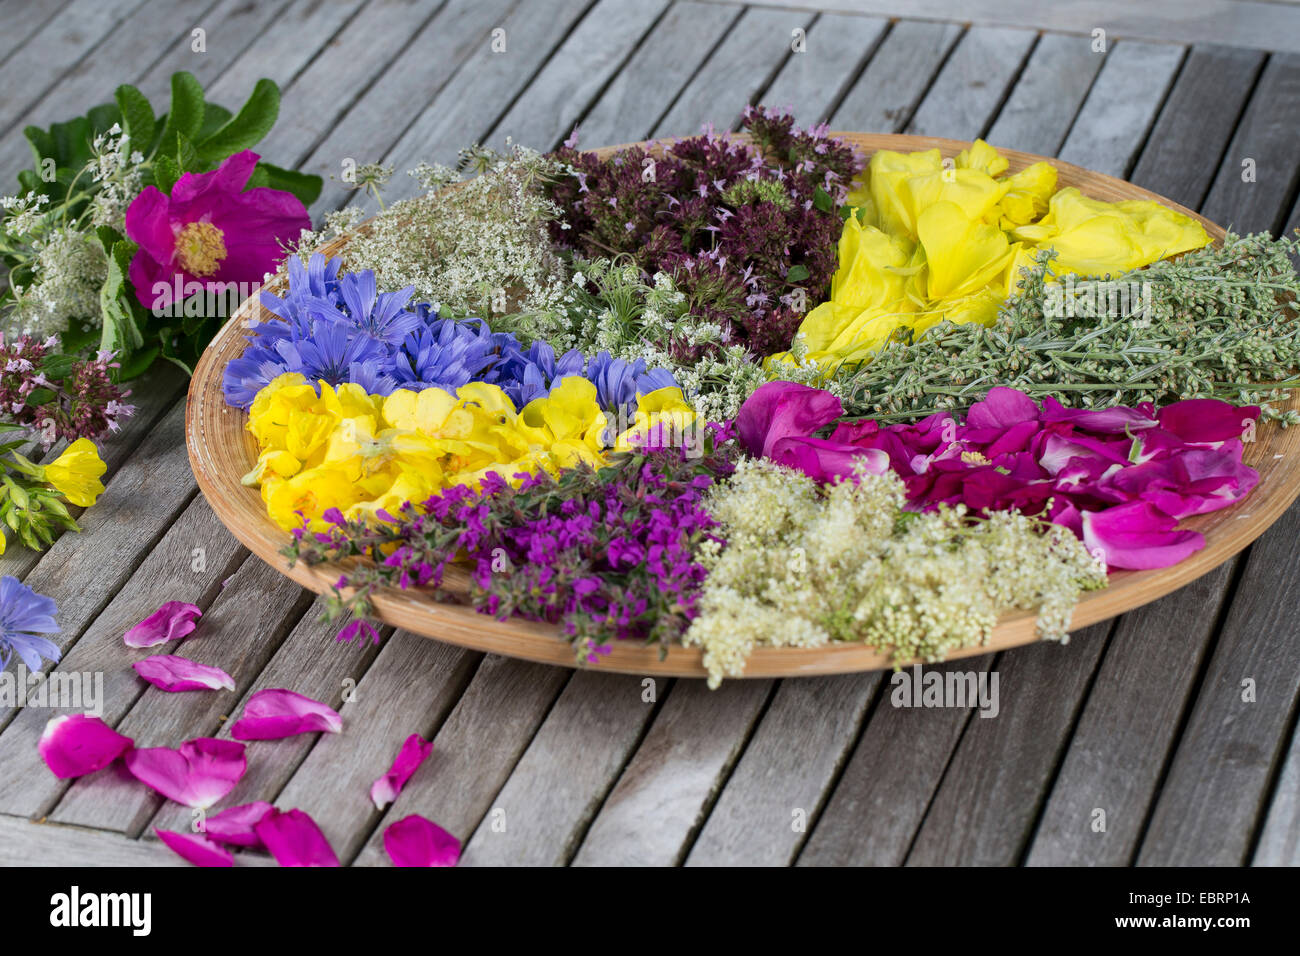 sorted blossoms drying on a plate - Stock Image